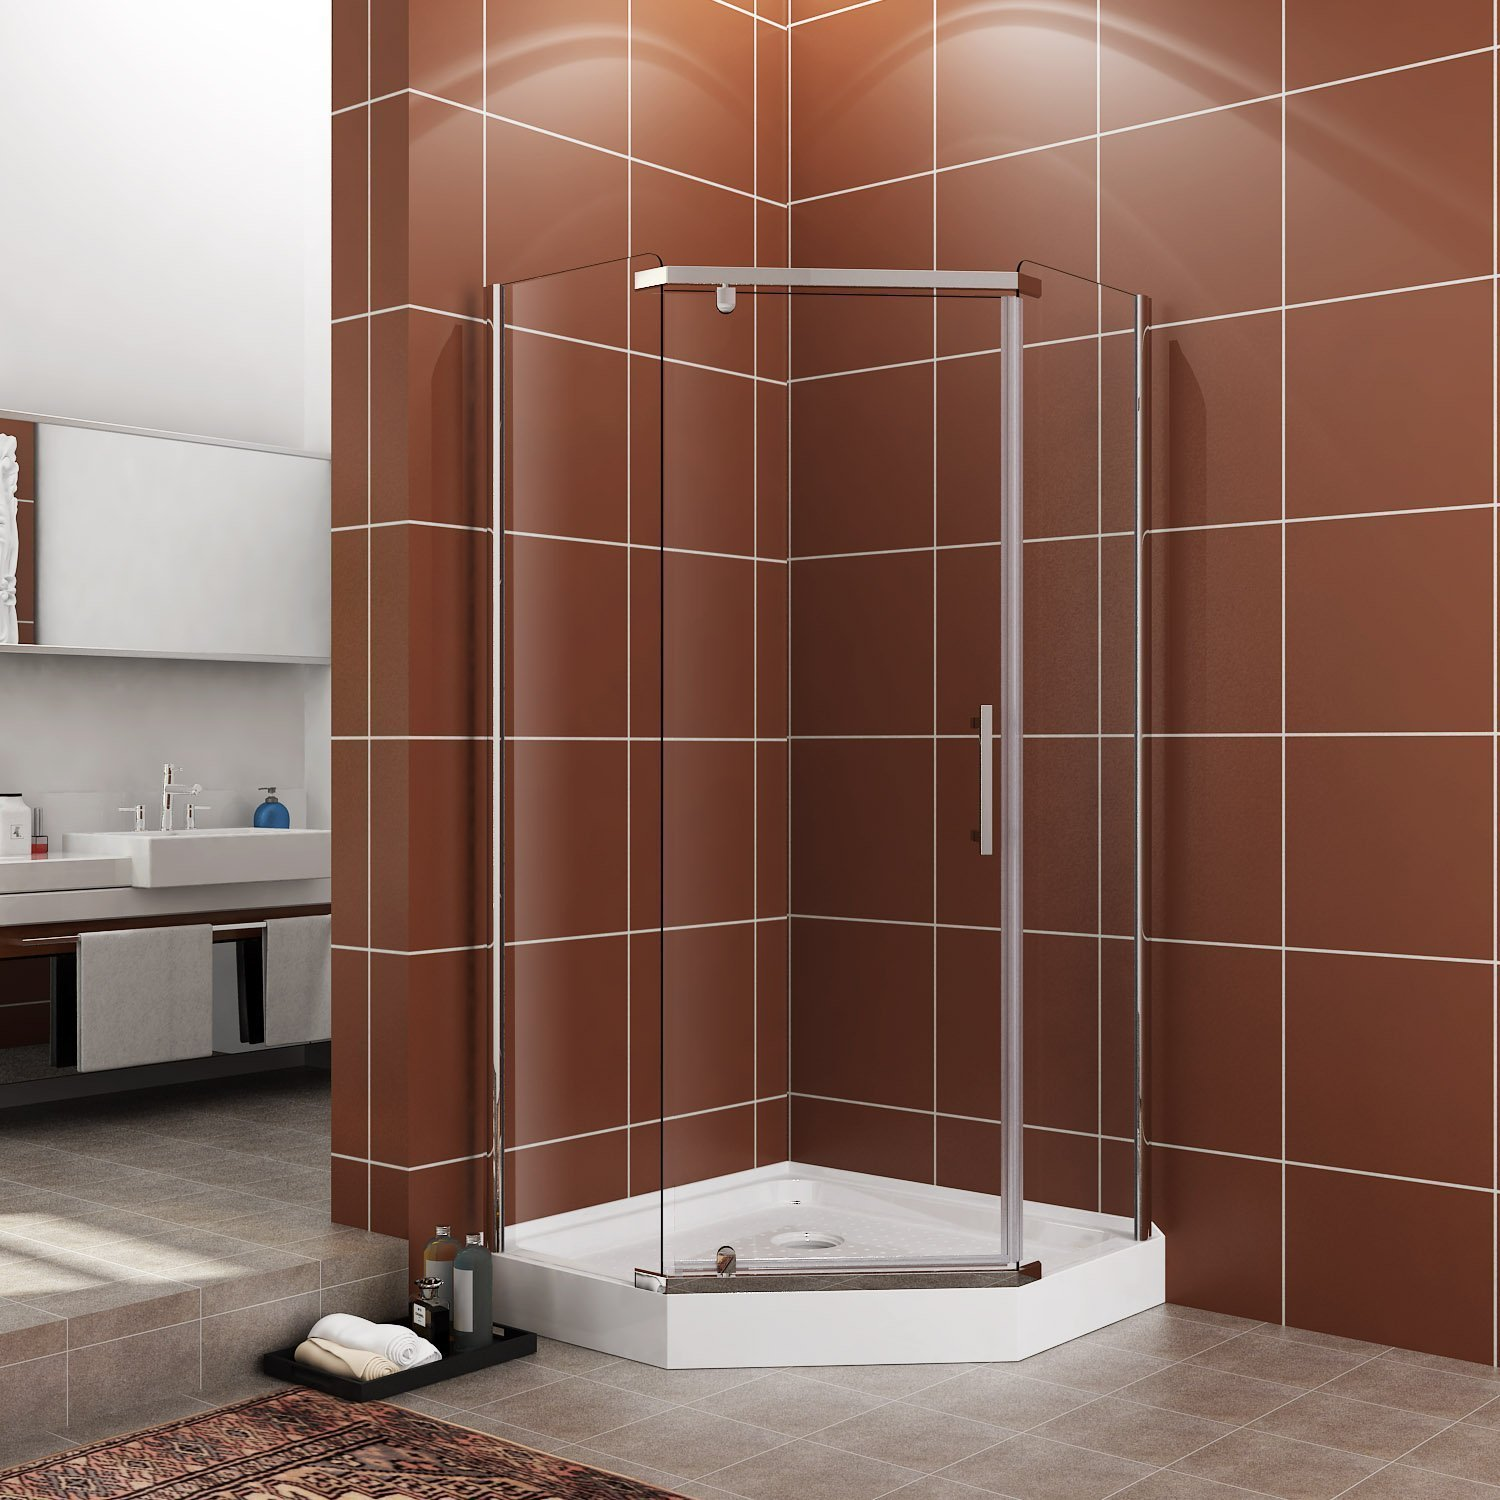 """SUNNY SHOWER Fit to 36 3/5"""" x 36 3/5"""" Neo Angle Shower Corner Door 1/4"""" Glass Frameless Pivot Door Stainless Steel-Door Only Not Included Back-wall & Base"""